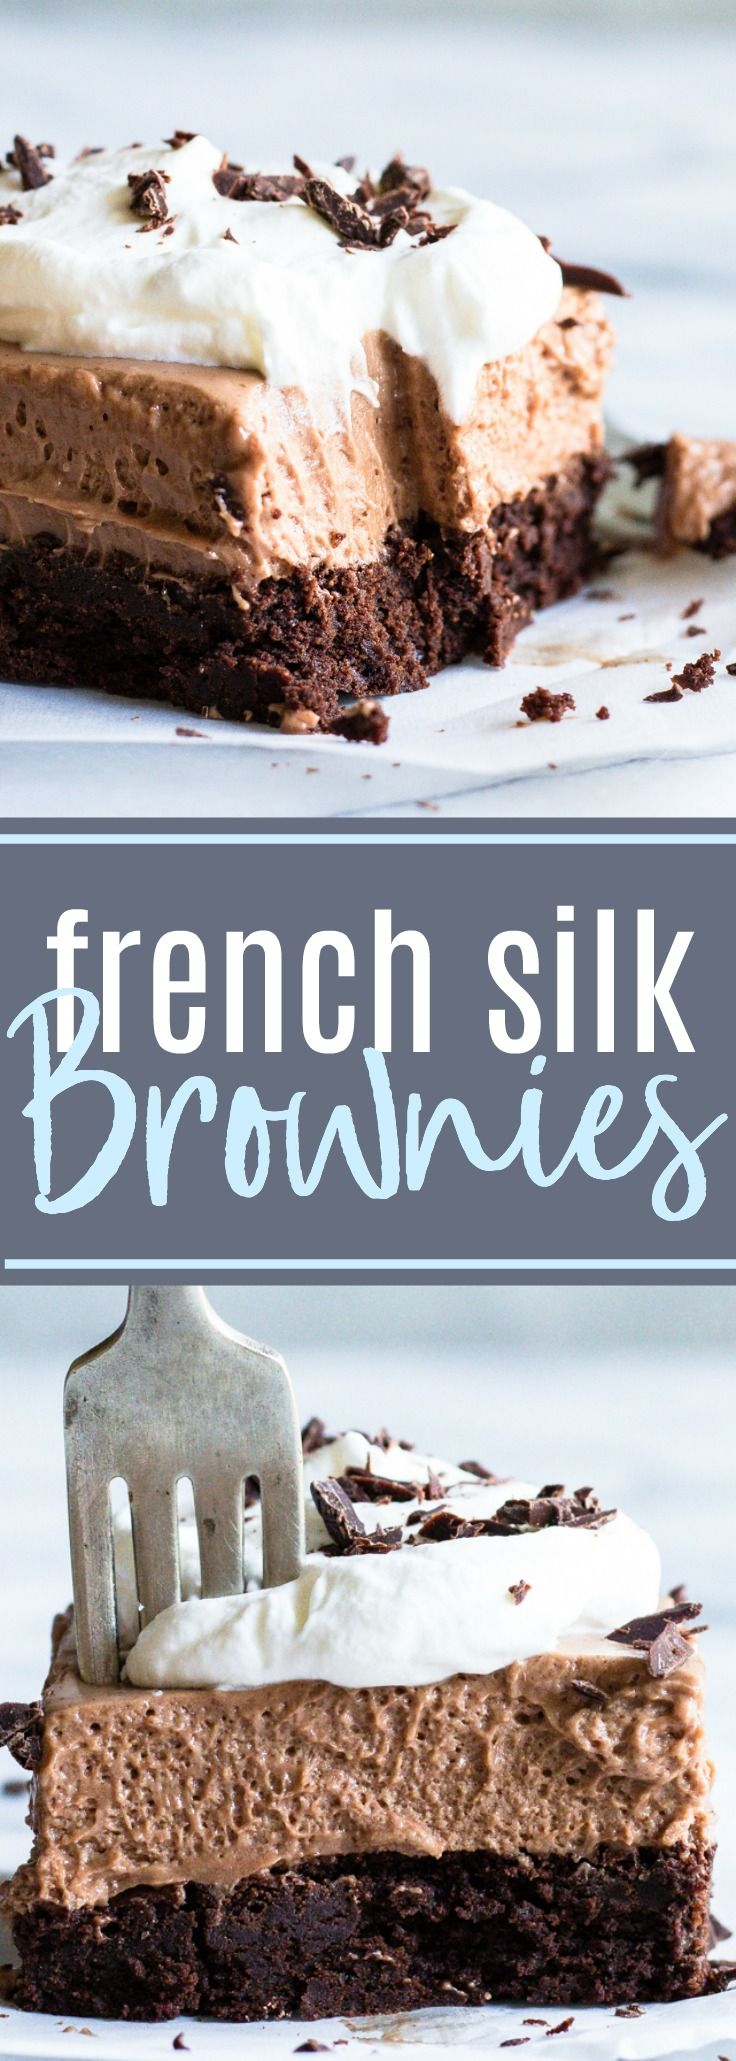 French Silk Brownies. A homemade fudgy brownie topped with a smooth and creamy French Silk topping. The ultimate in chocolate desserts #chocolate #dessert #baking #frenchsilk